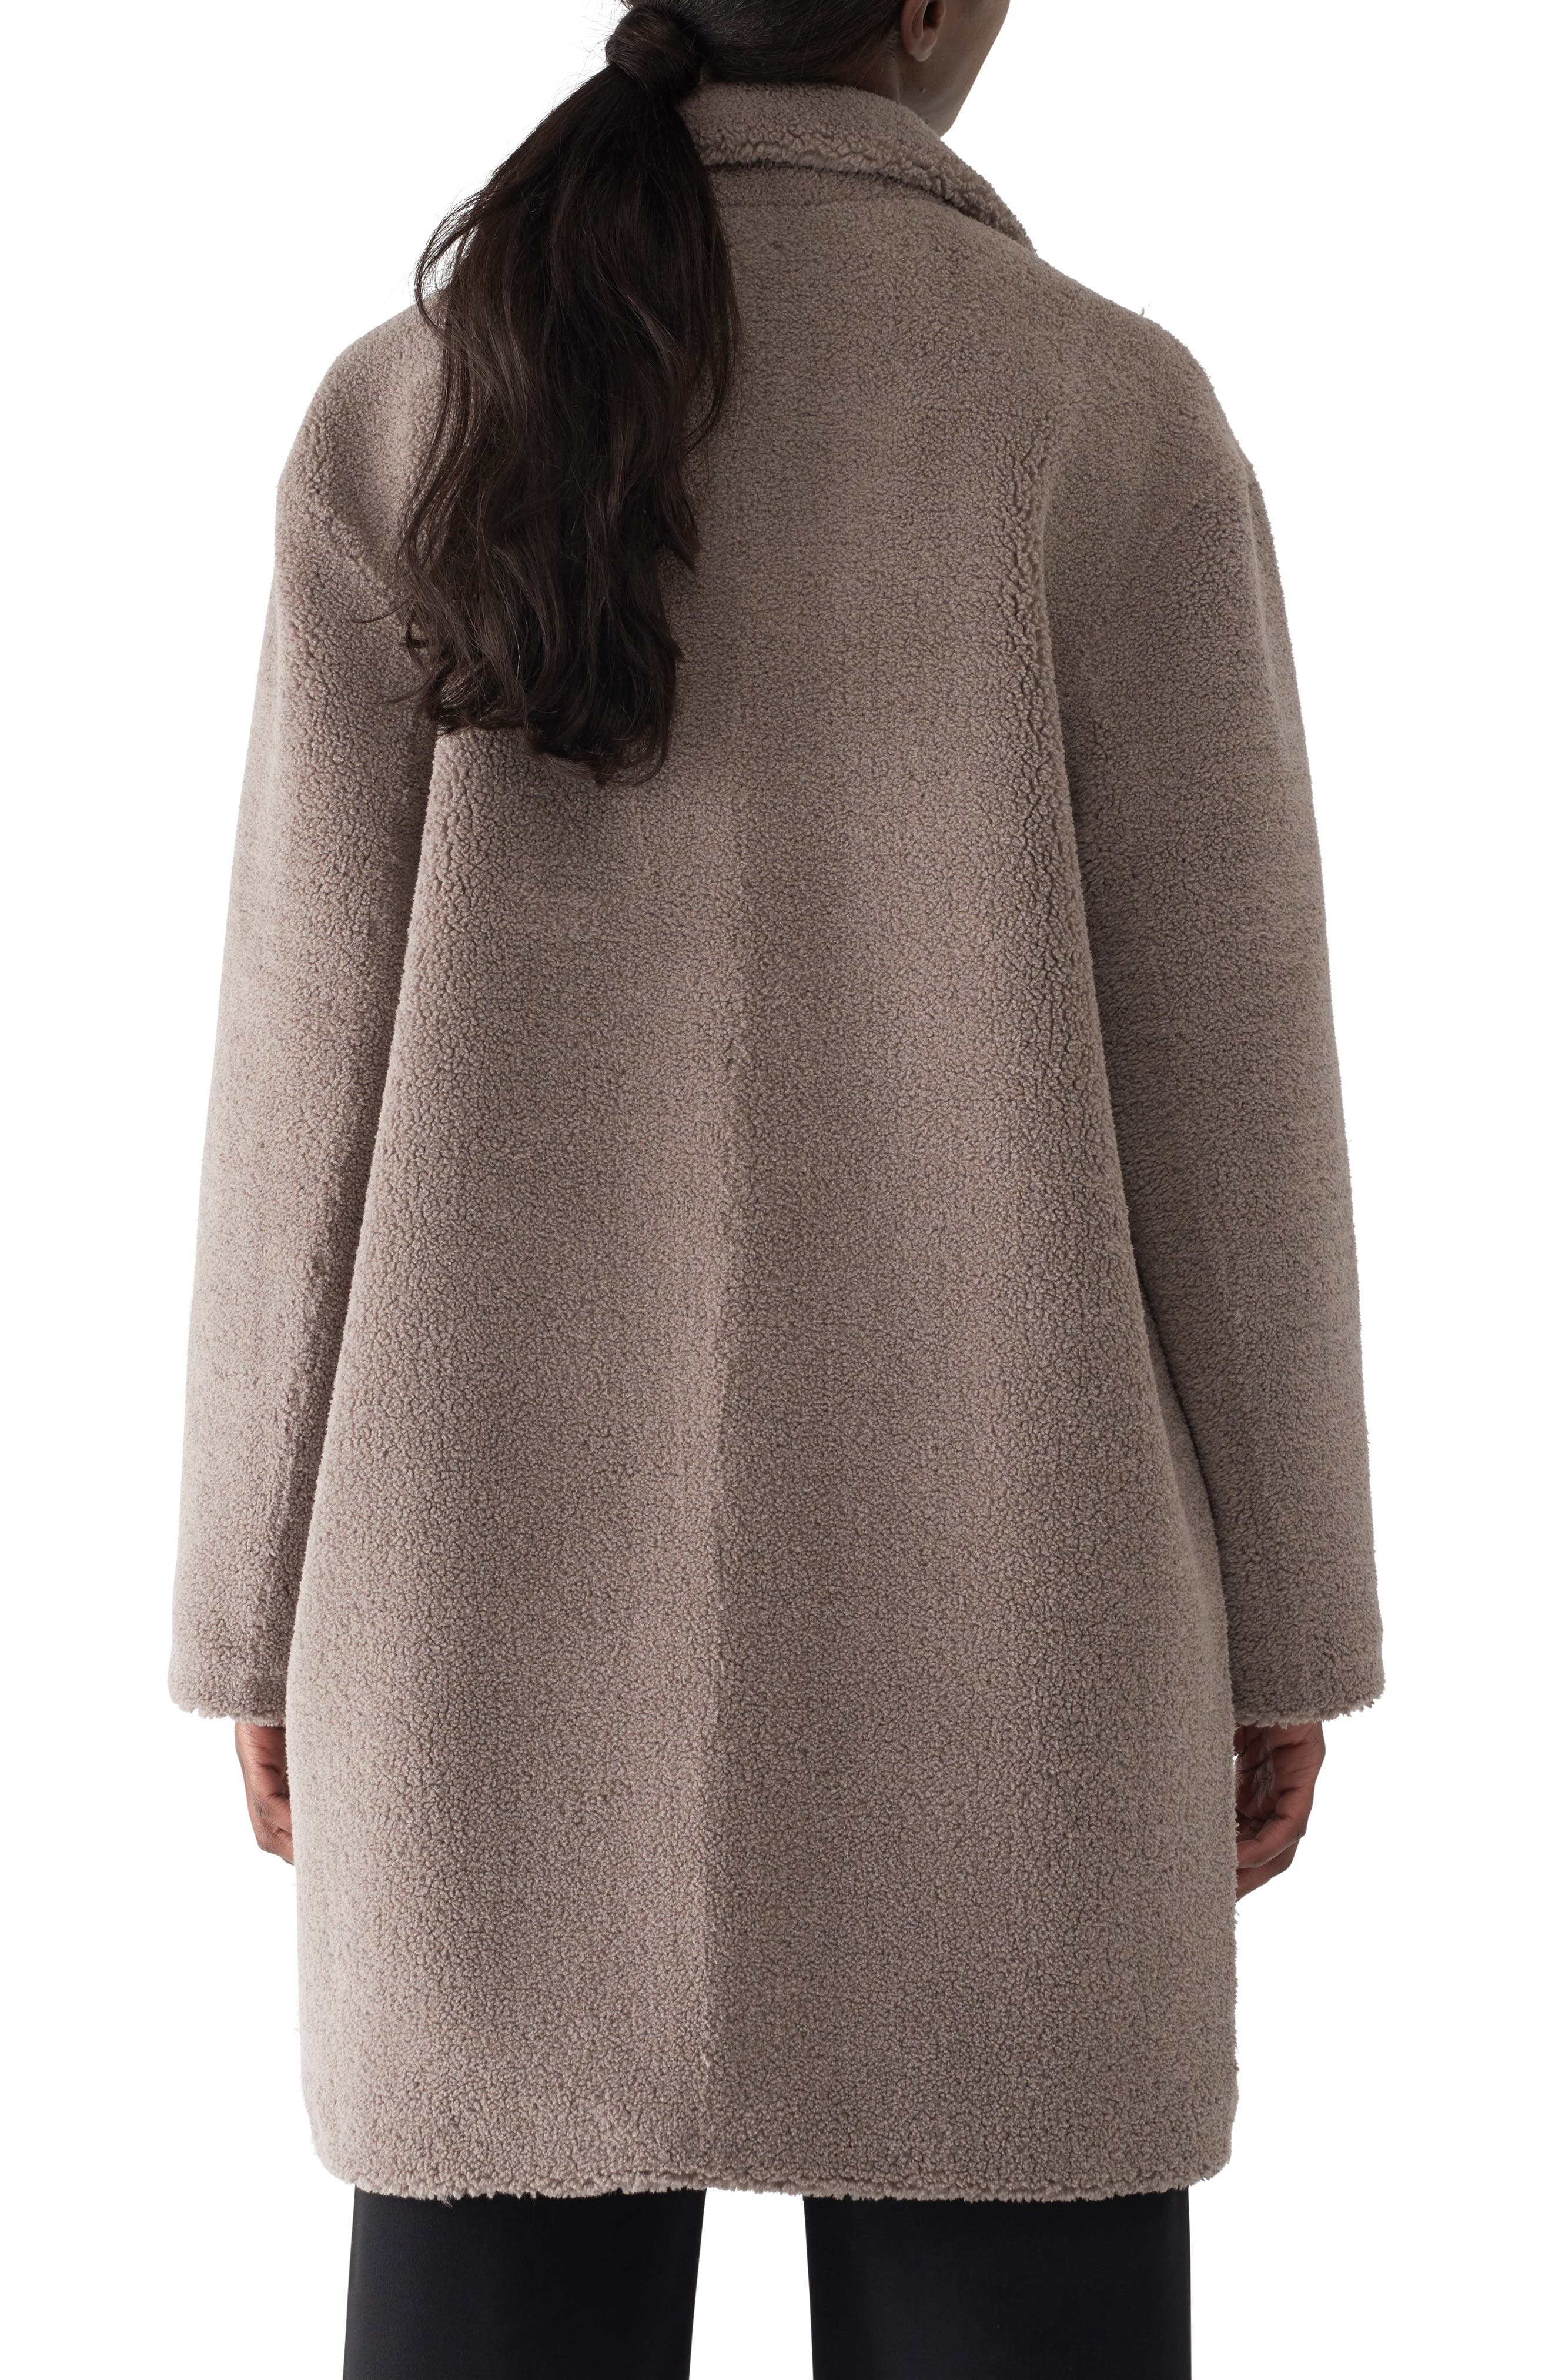 Gita Teddy Coat,                             Alternate thumbnail 2, color,                             TAUPE